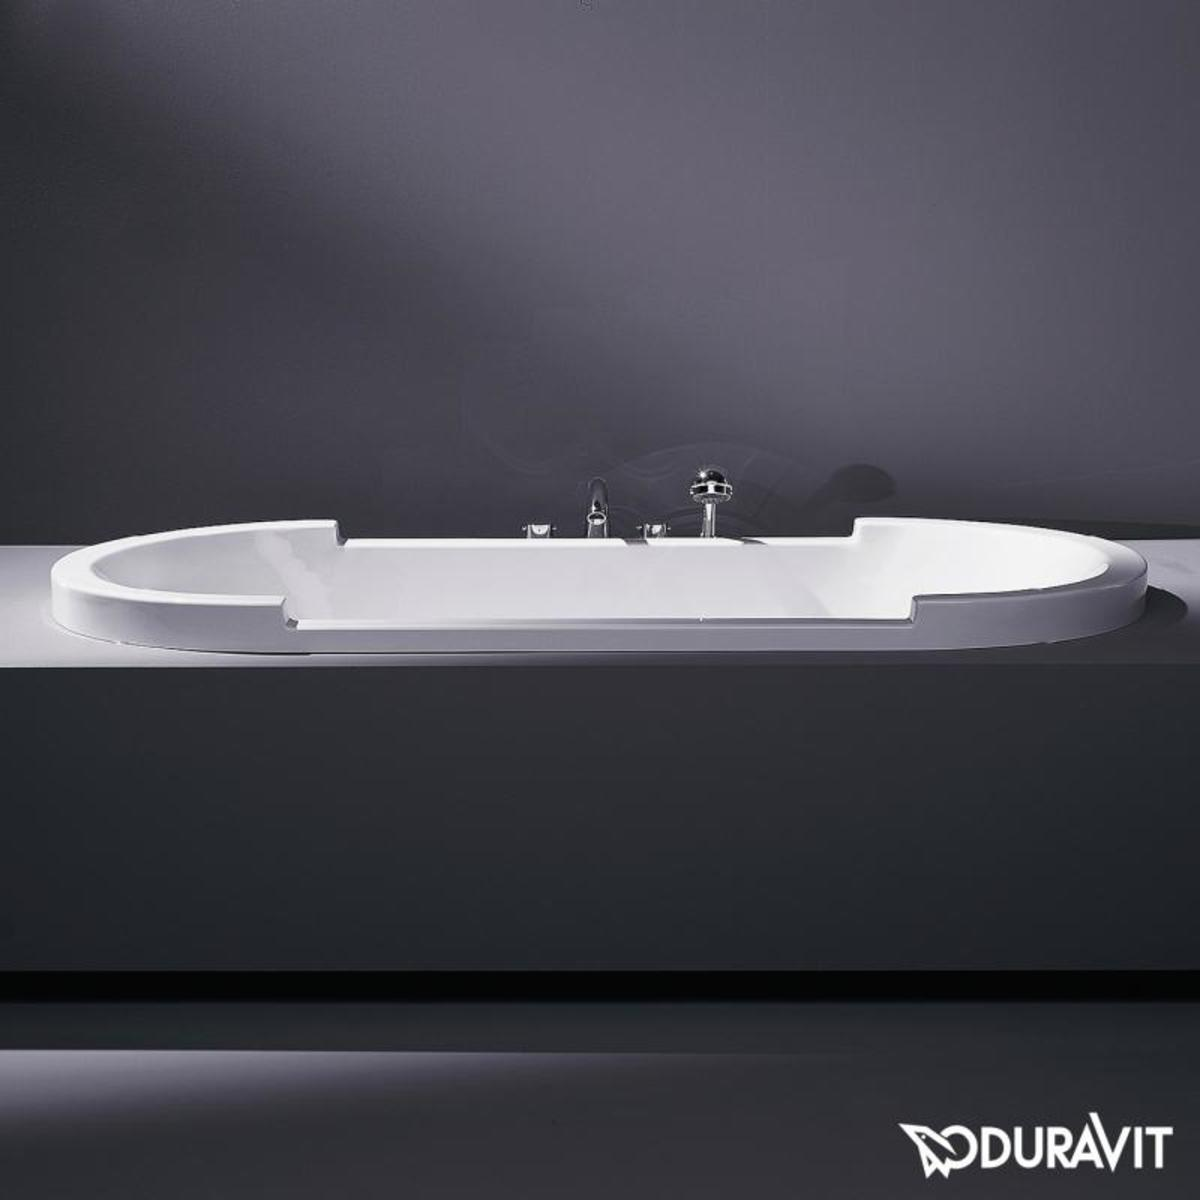 duravit starck bad acryl ovaal 190x90x46cm wit. Black Bedroom Furniture Sets. Home Design Ideas